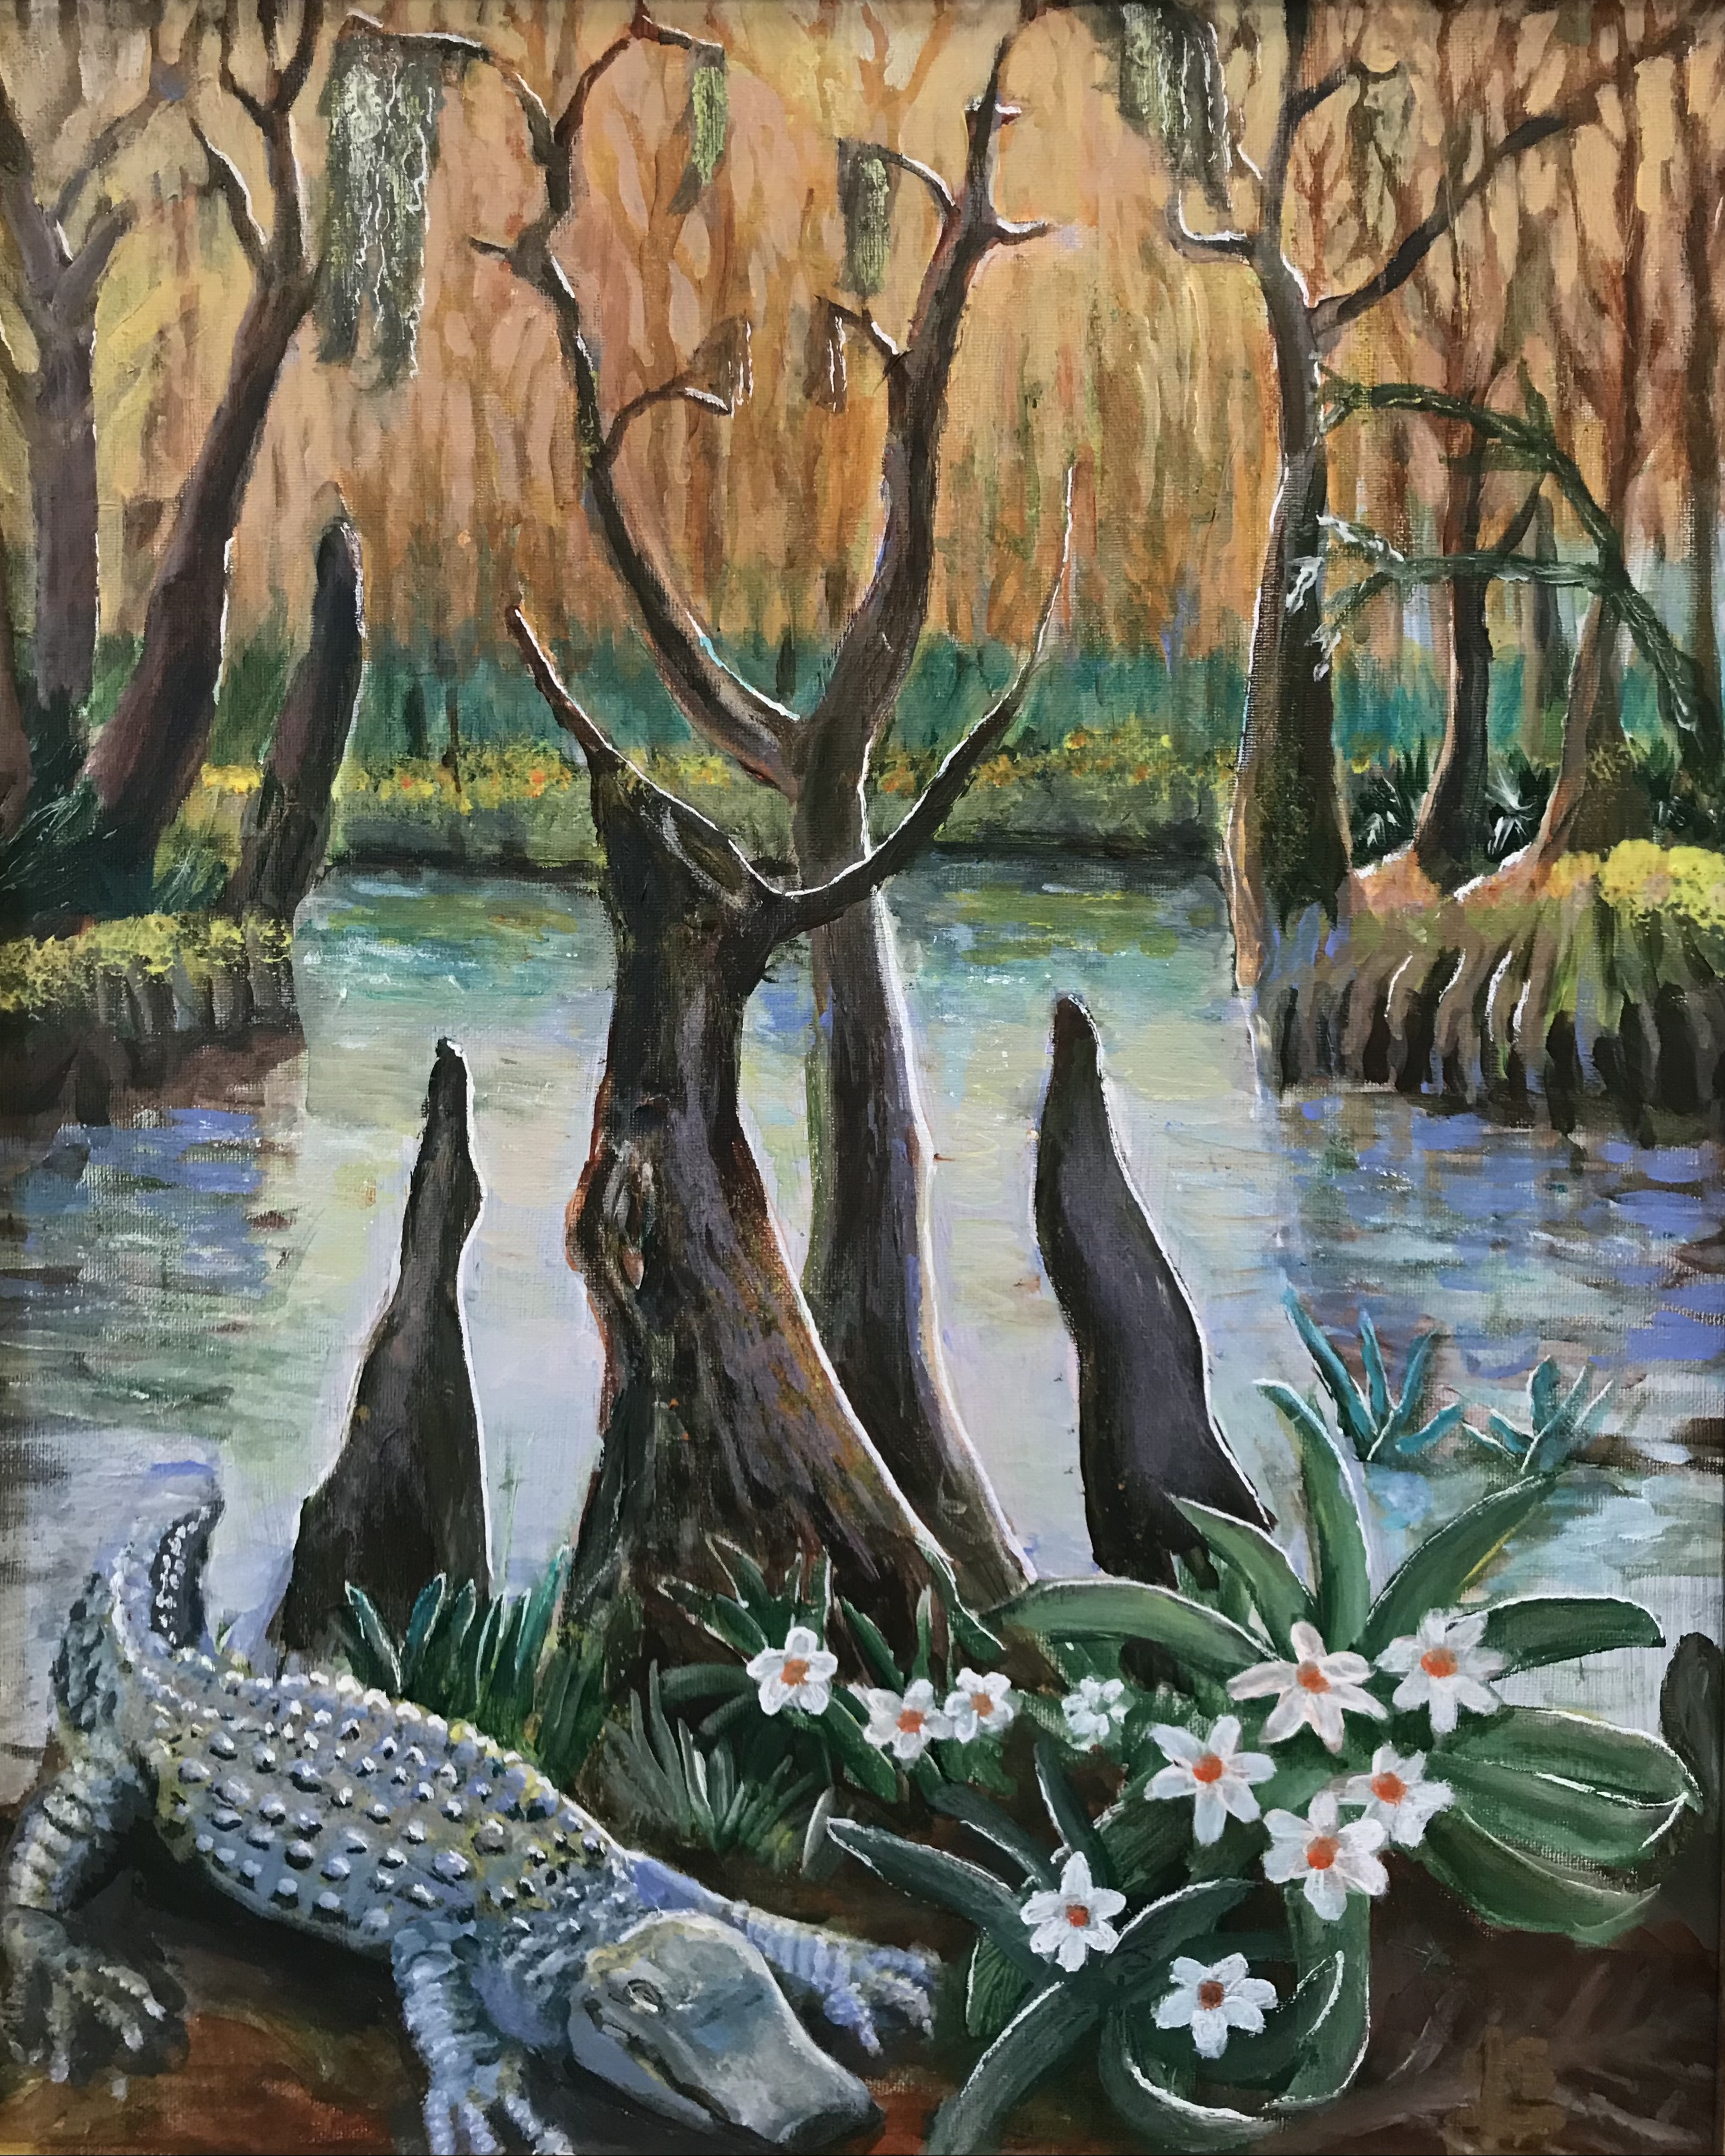 'Swamp/Lovers', acrylic on canvas by Steve Leibowitz ($999) ⎼ 'It's a Florida swamp, with the occasional alligator. But hidden in the negative space are two lovers.'